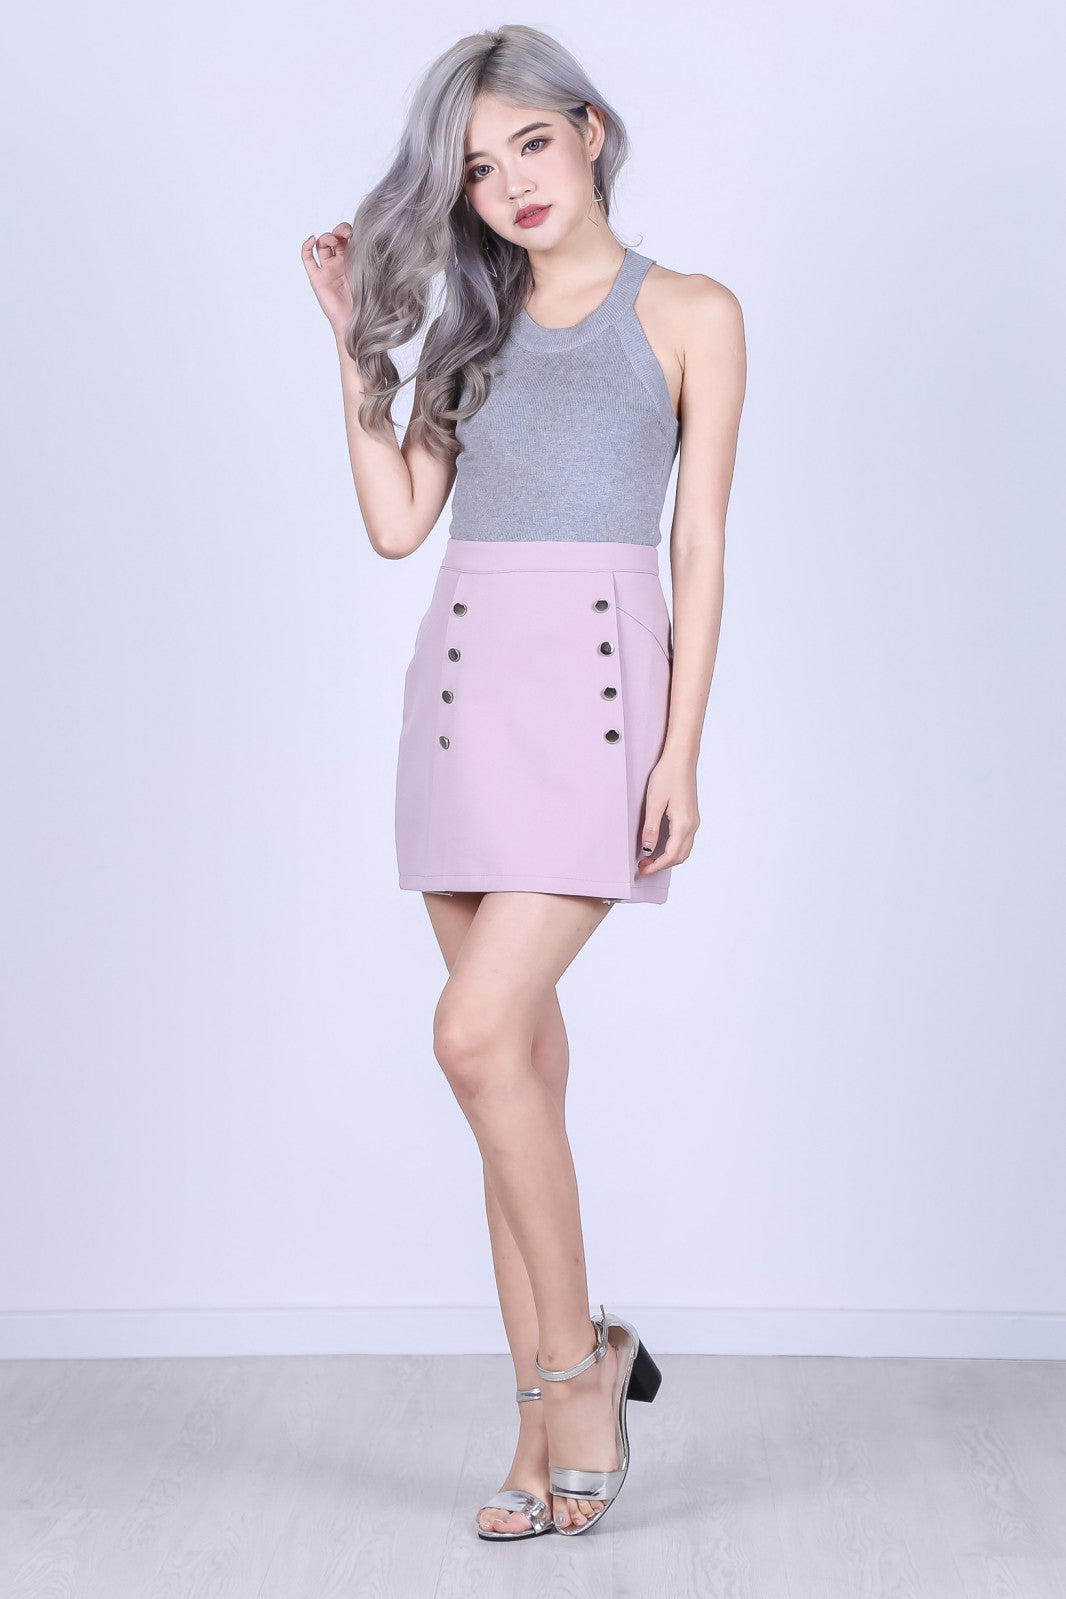 MILITARY DOUBLE ROW SKORTS IN NUDE PINK - TOPAZETTE